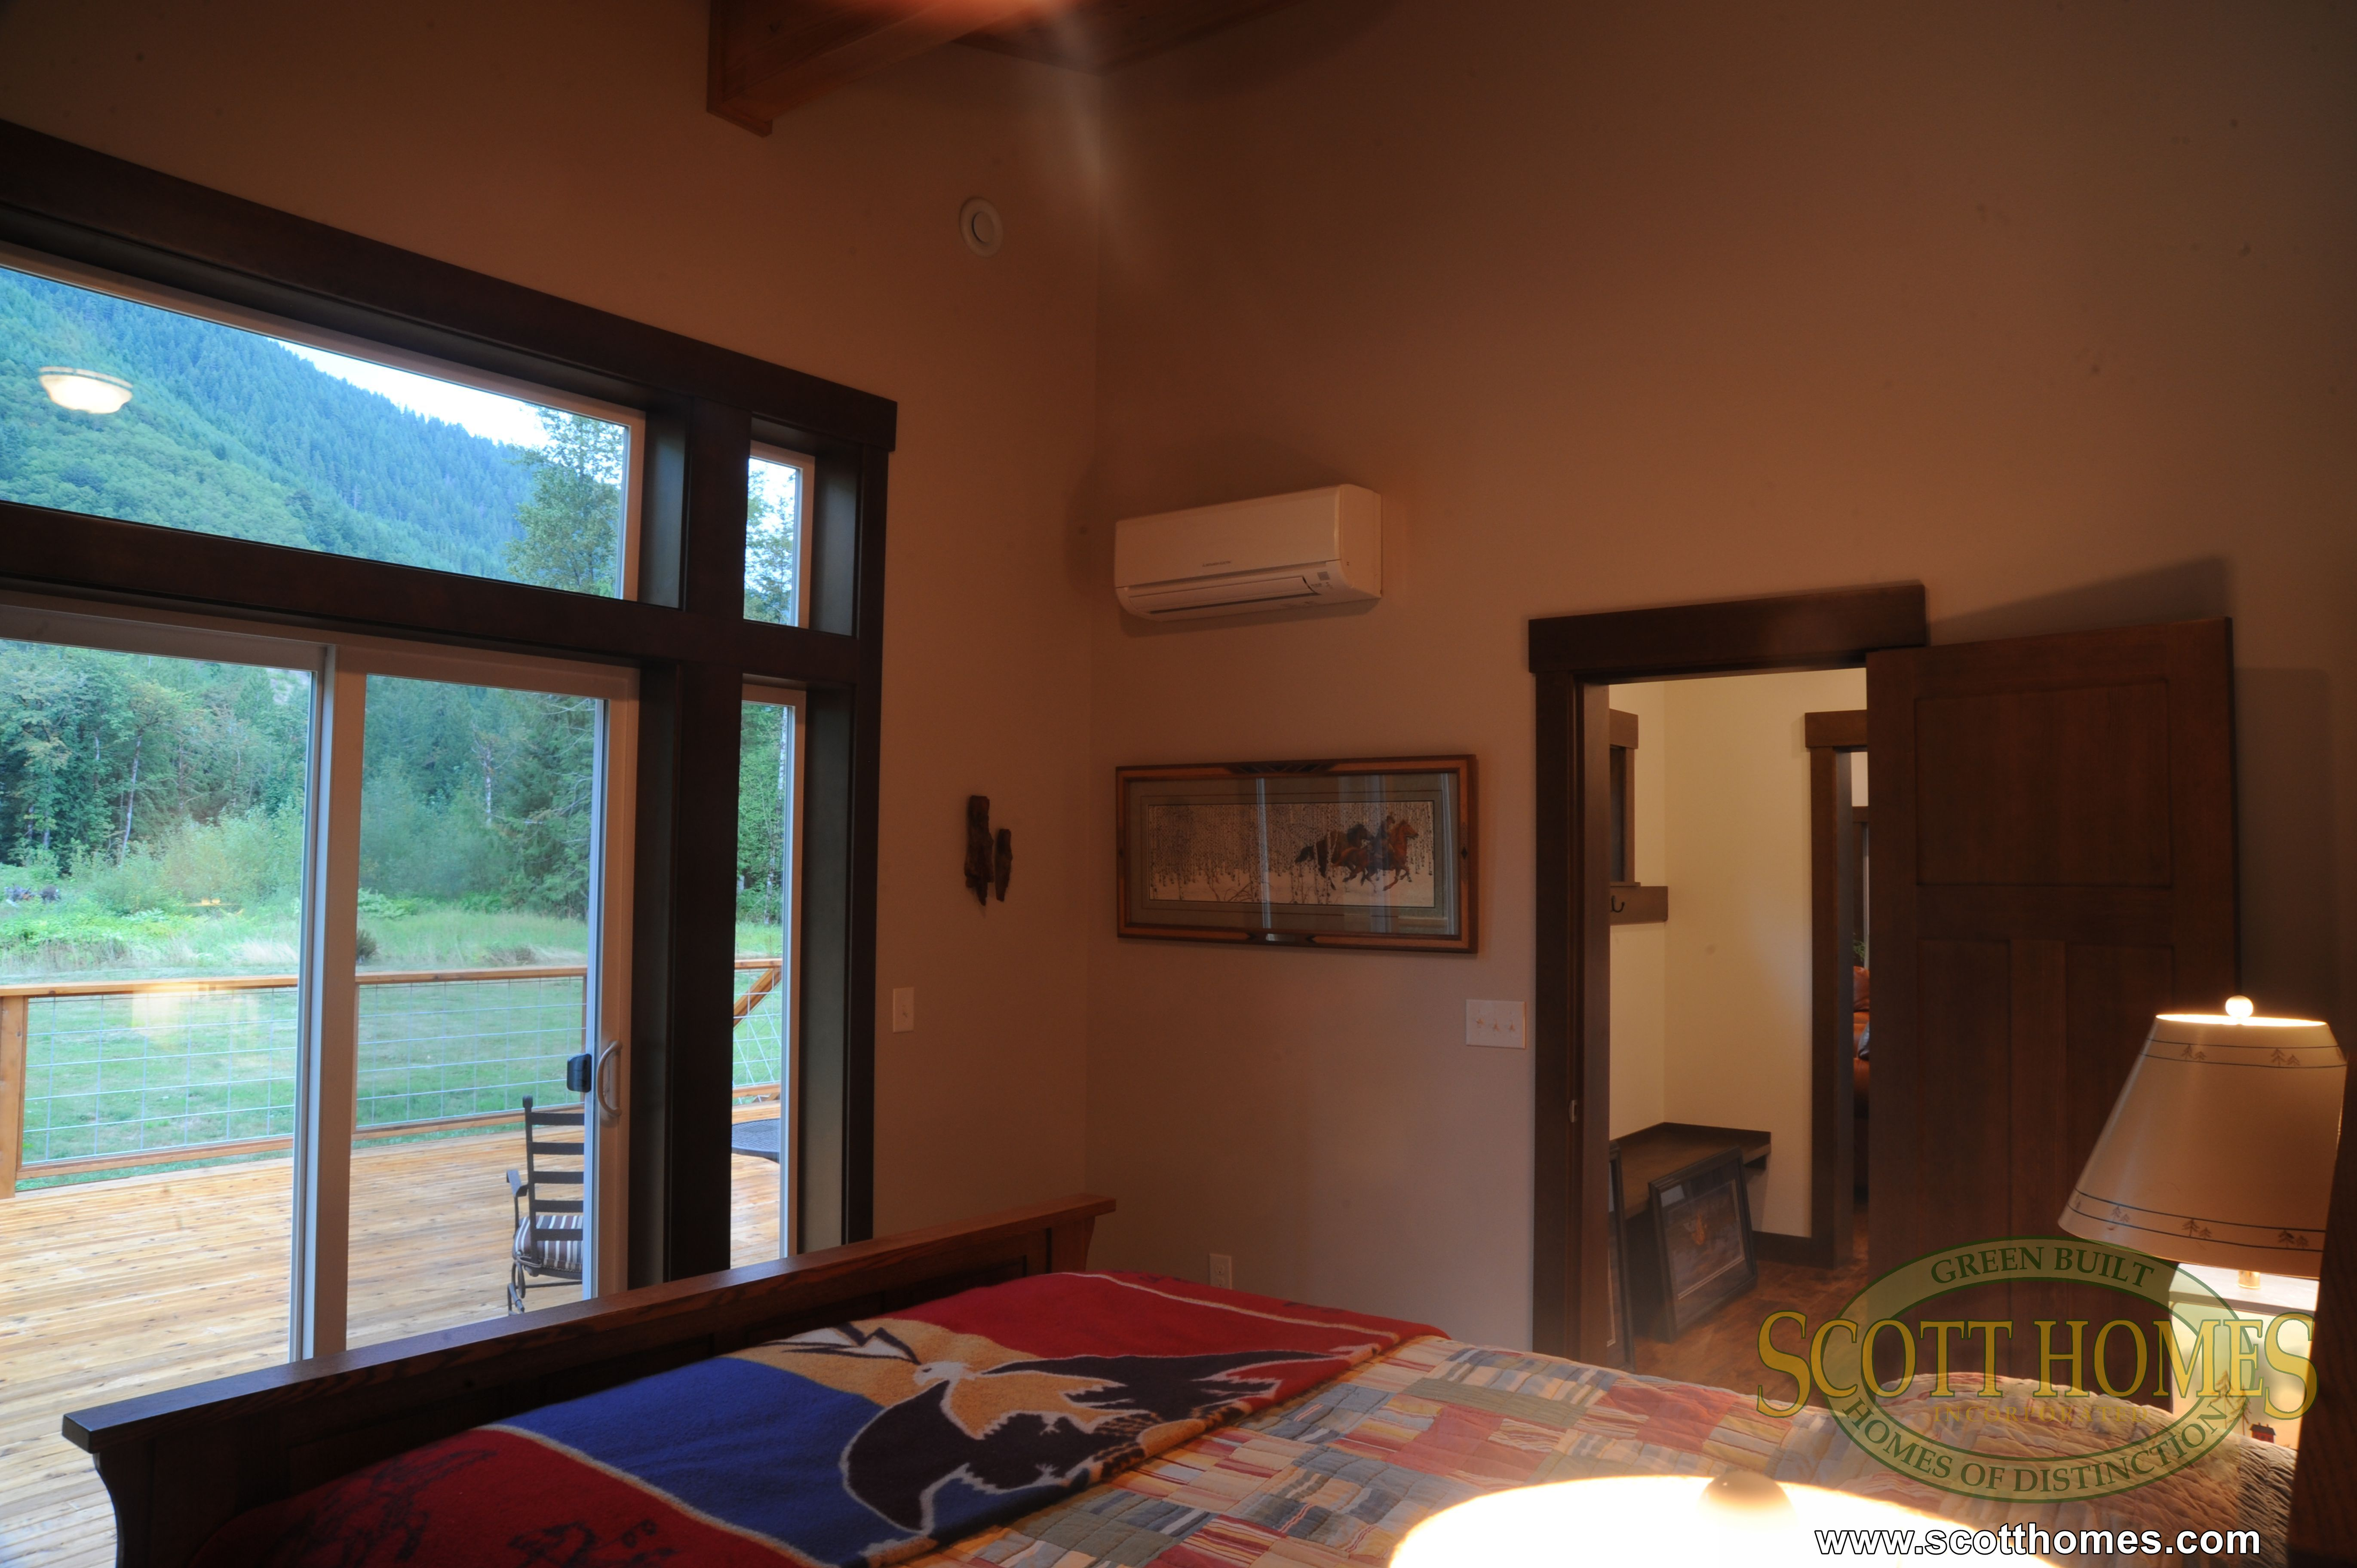 The Master Bedroom Right Off The Foyer Has A Ductless Heat Pump